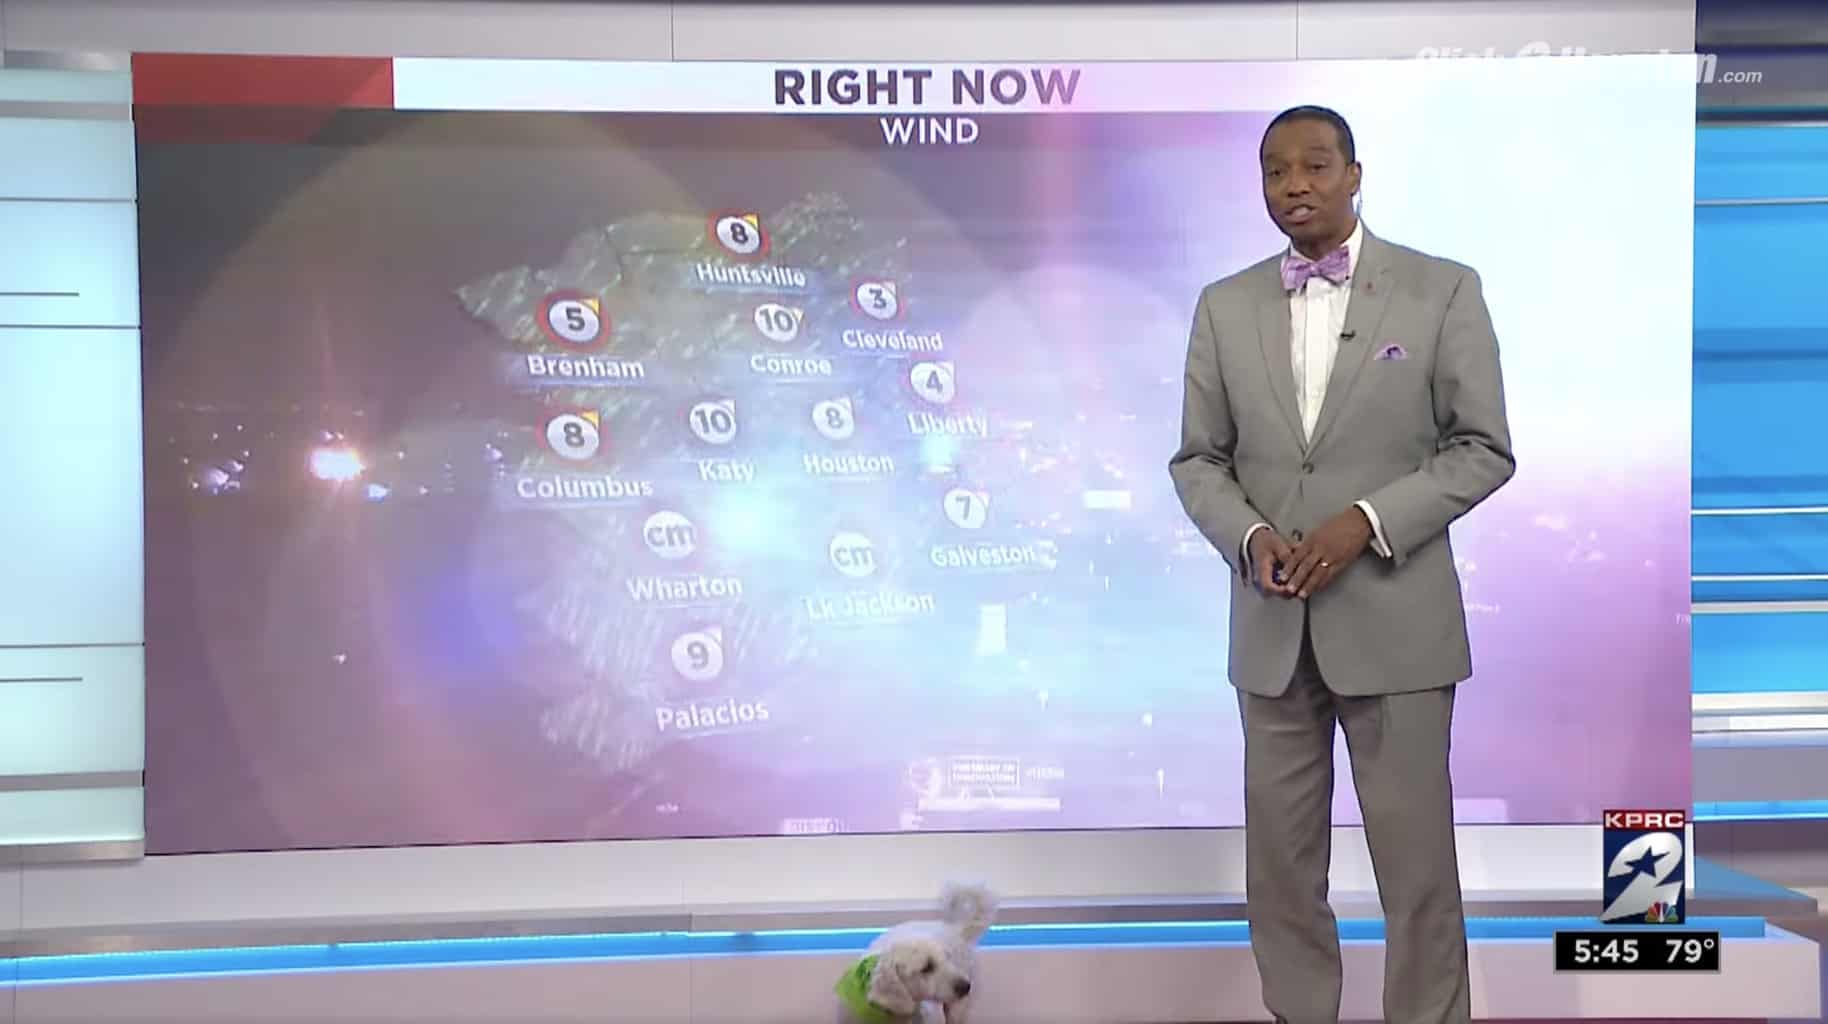 dog gatecrashes the weather forecast